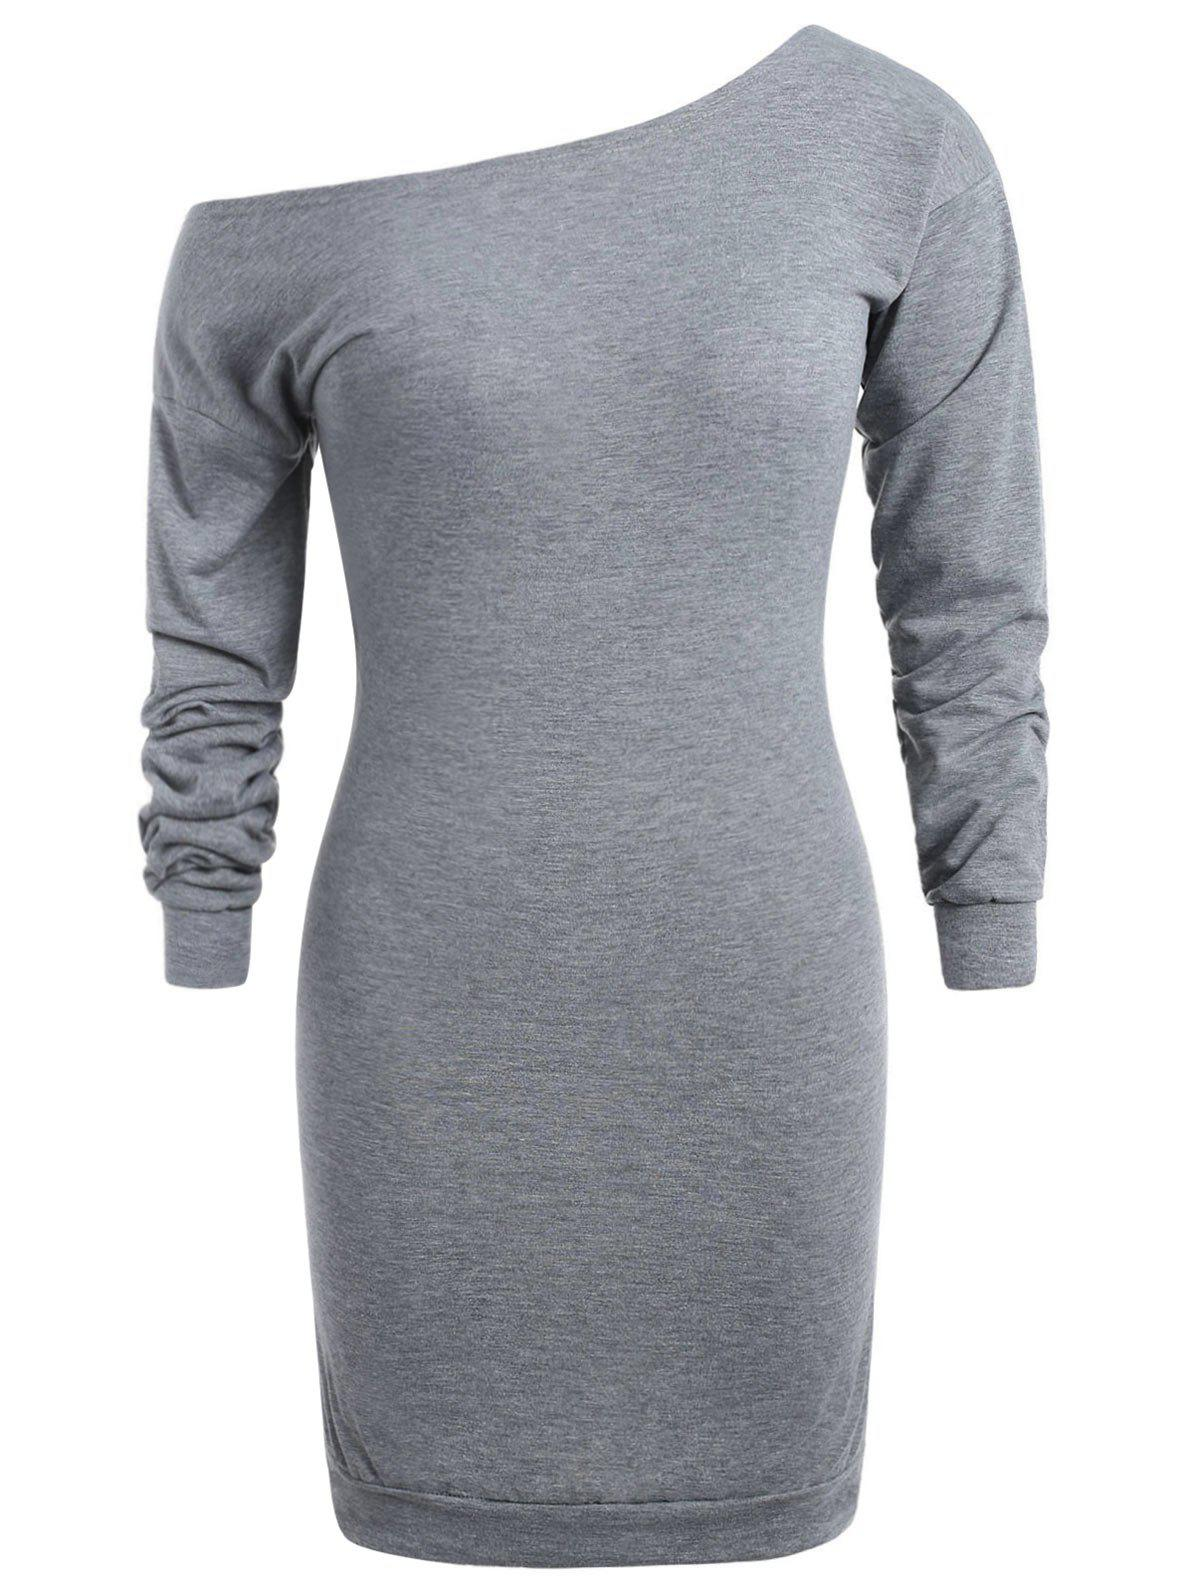 34% OFF] Plus Size Skew Neck Sweatshirt Dress | Rosegal